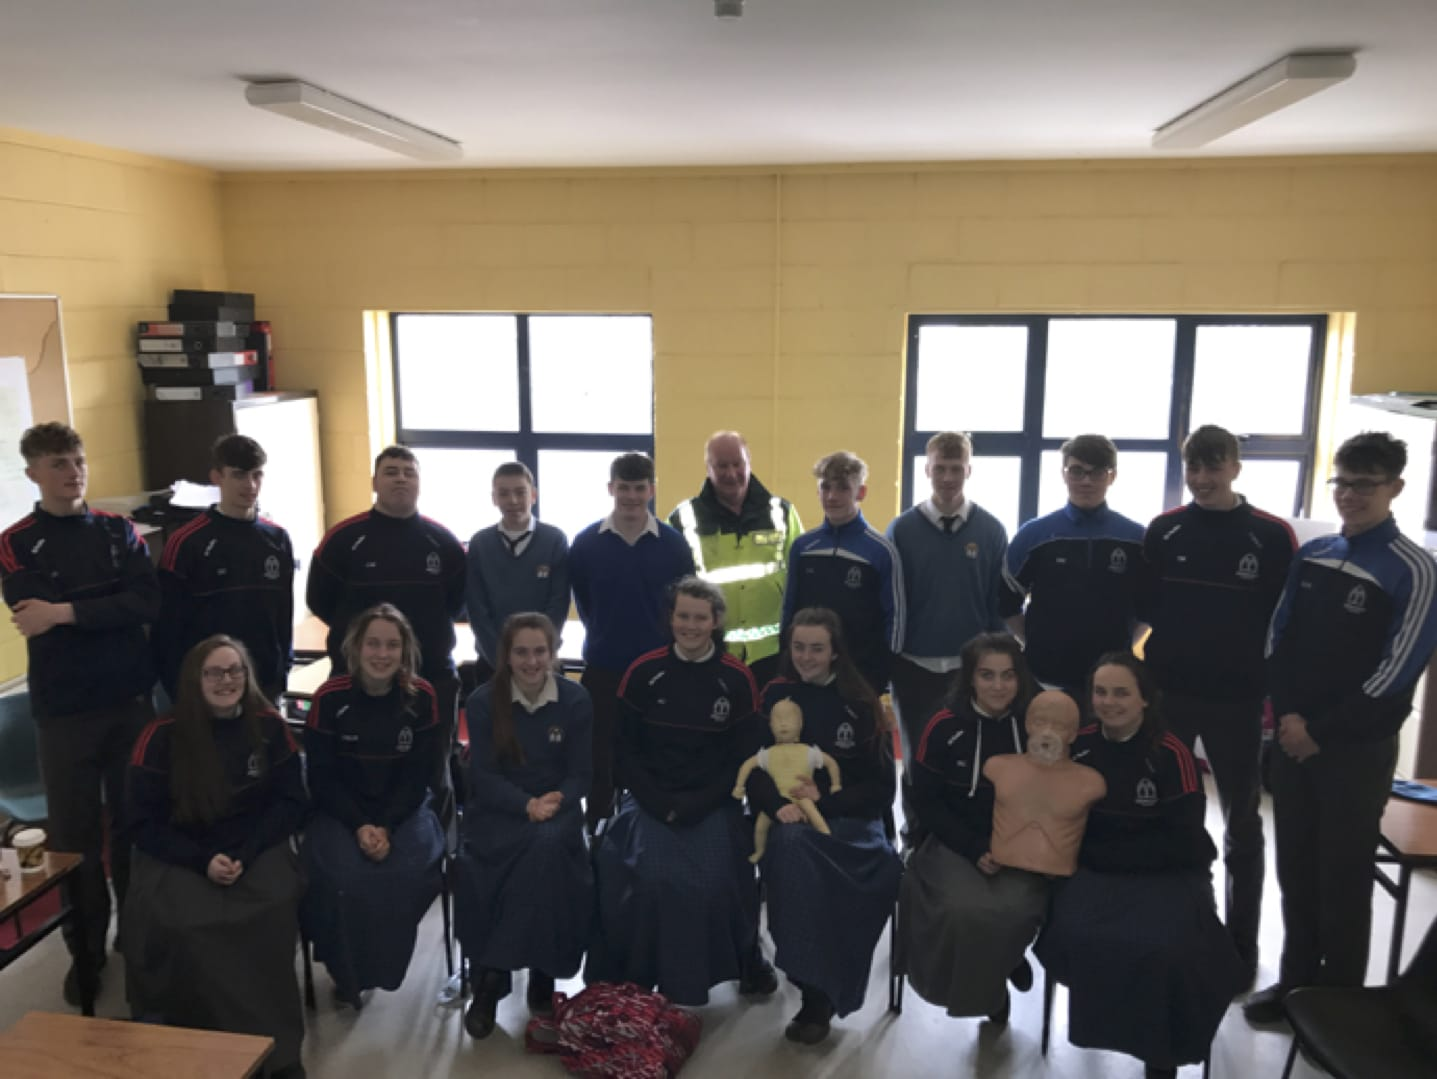 May 2017: Desmond College Transition year students complete a First Aid Course